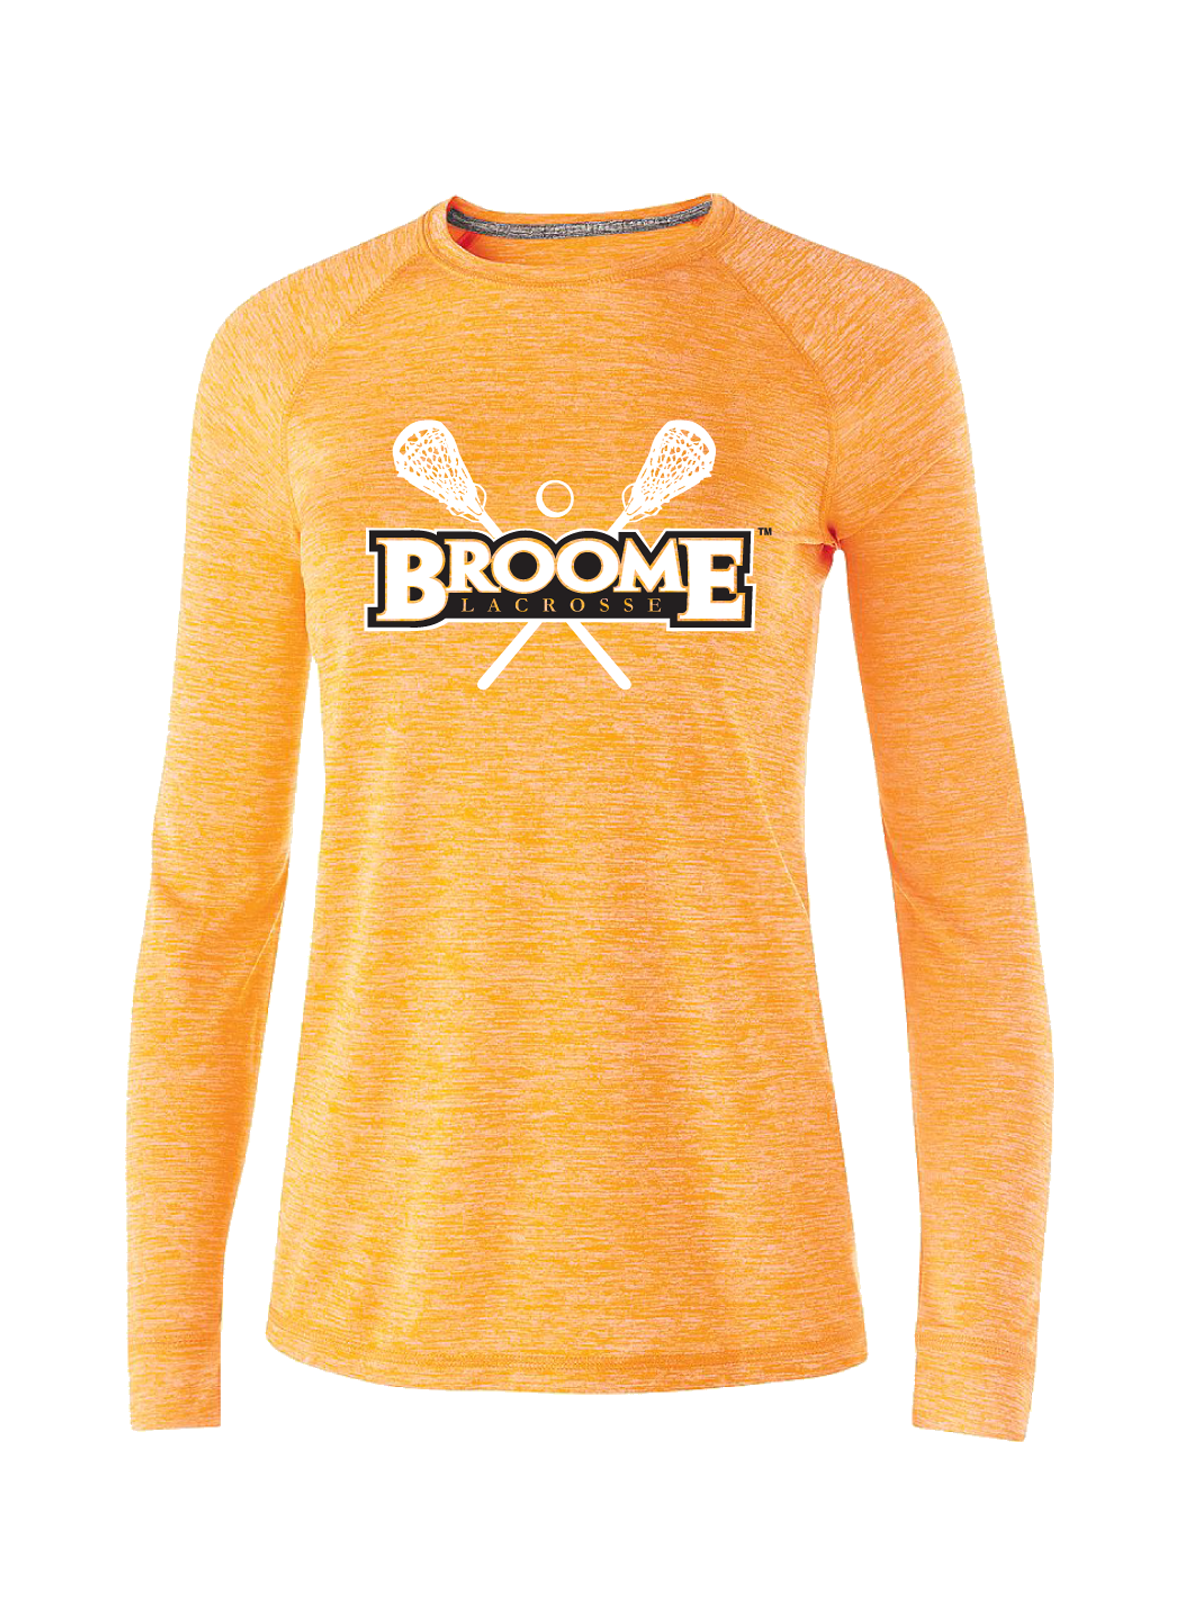 broome_lax-1.png